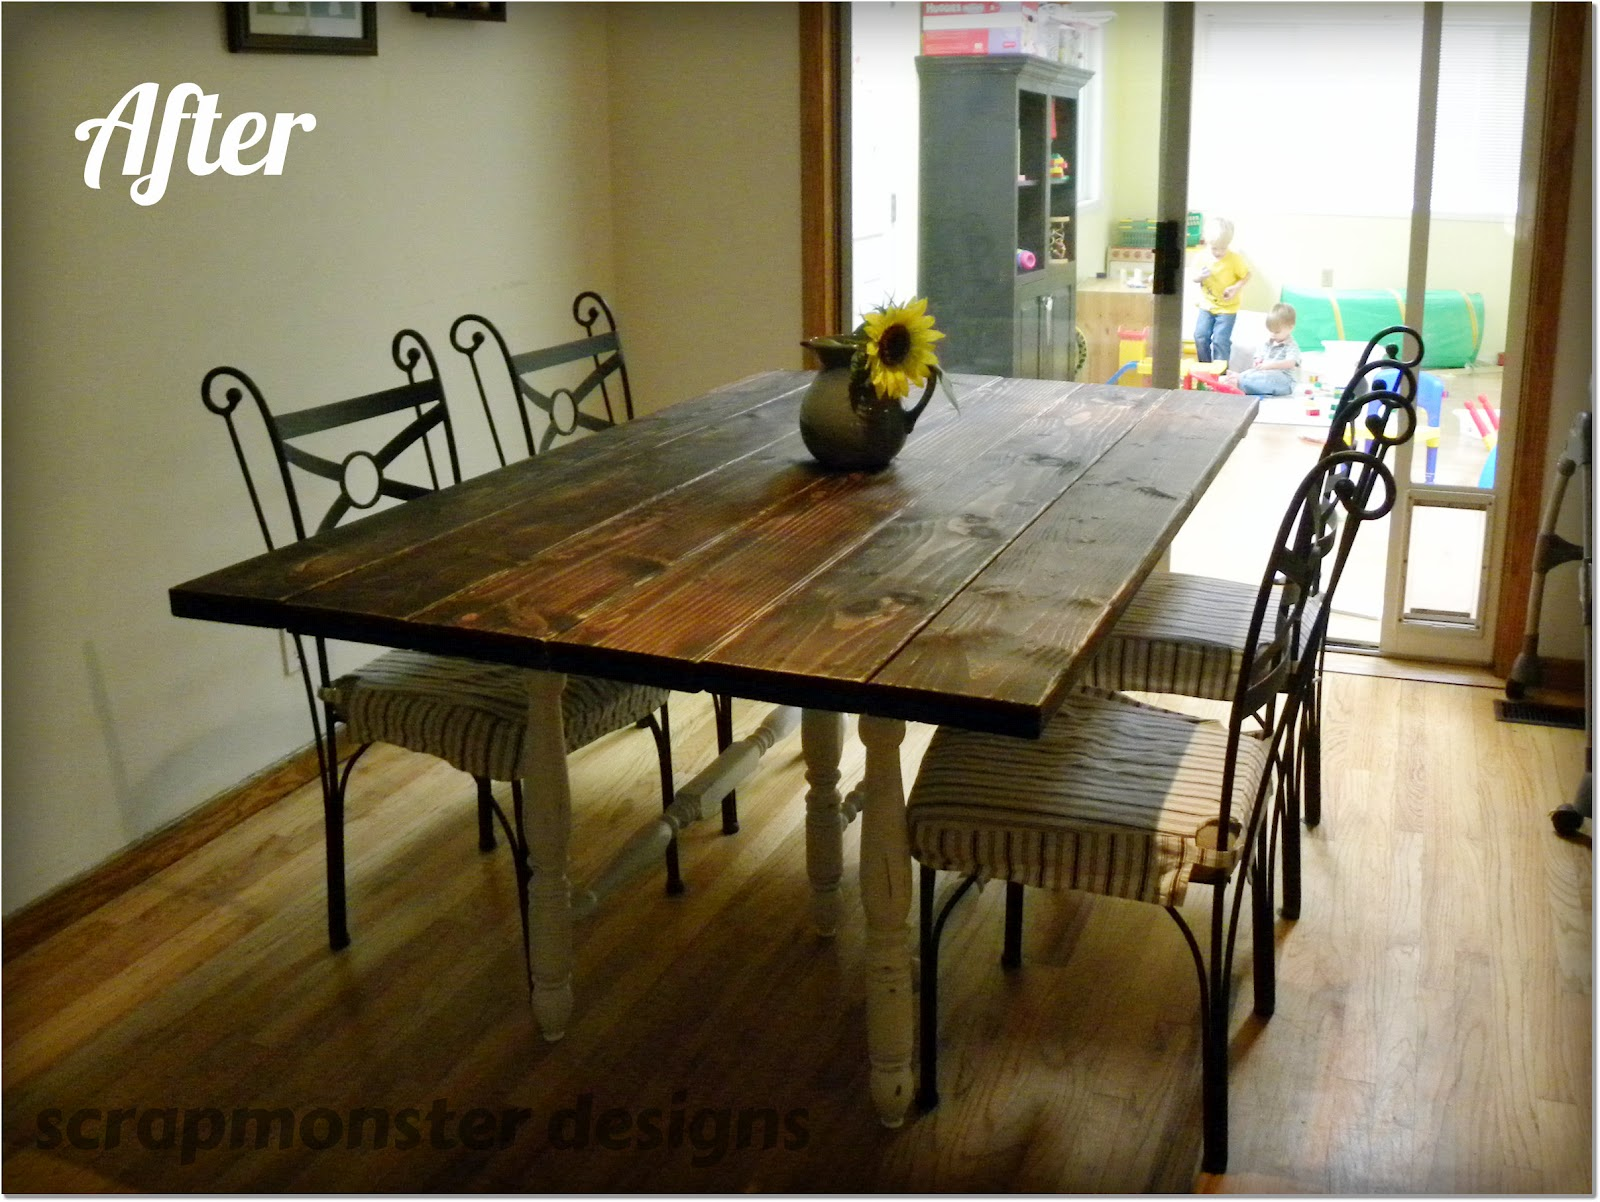 scrapmonster: Rustic Dining Table Make